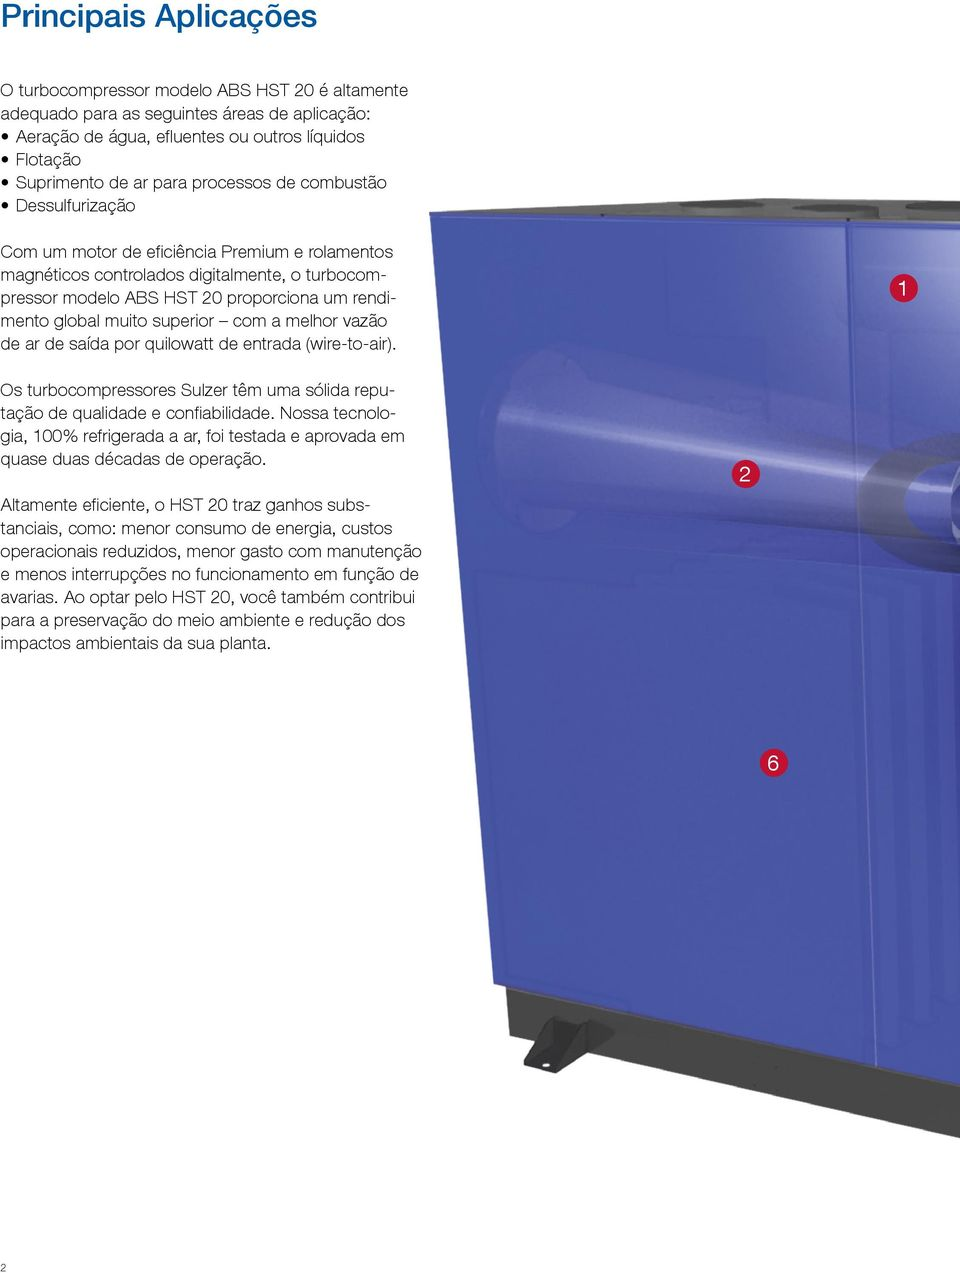 Turbocompressor modelo ABS HST 20 - PDF